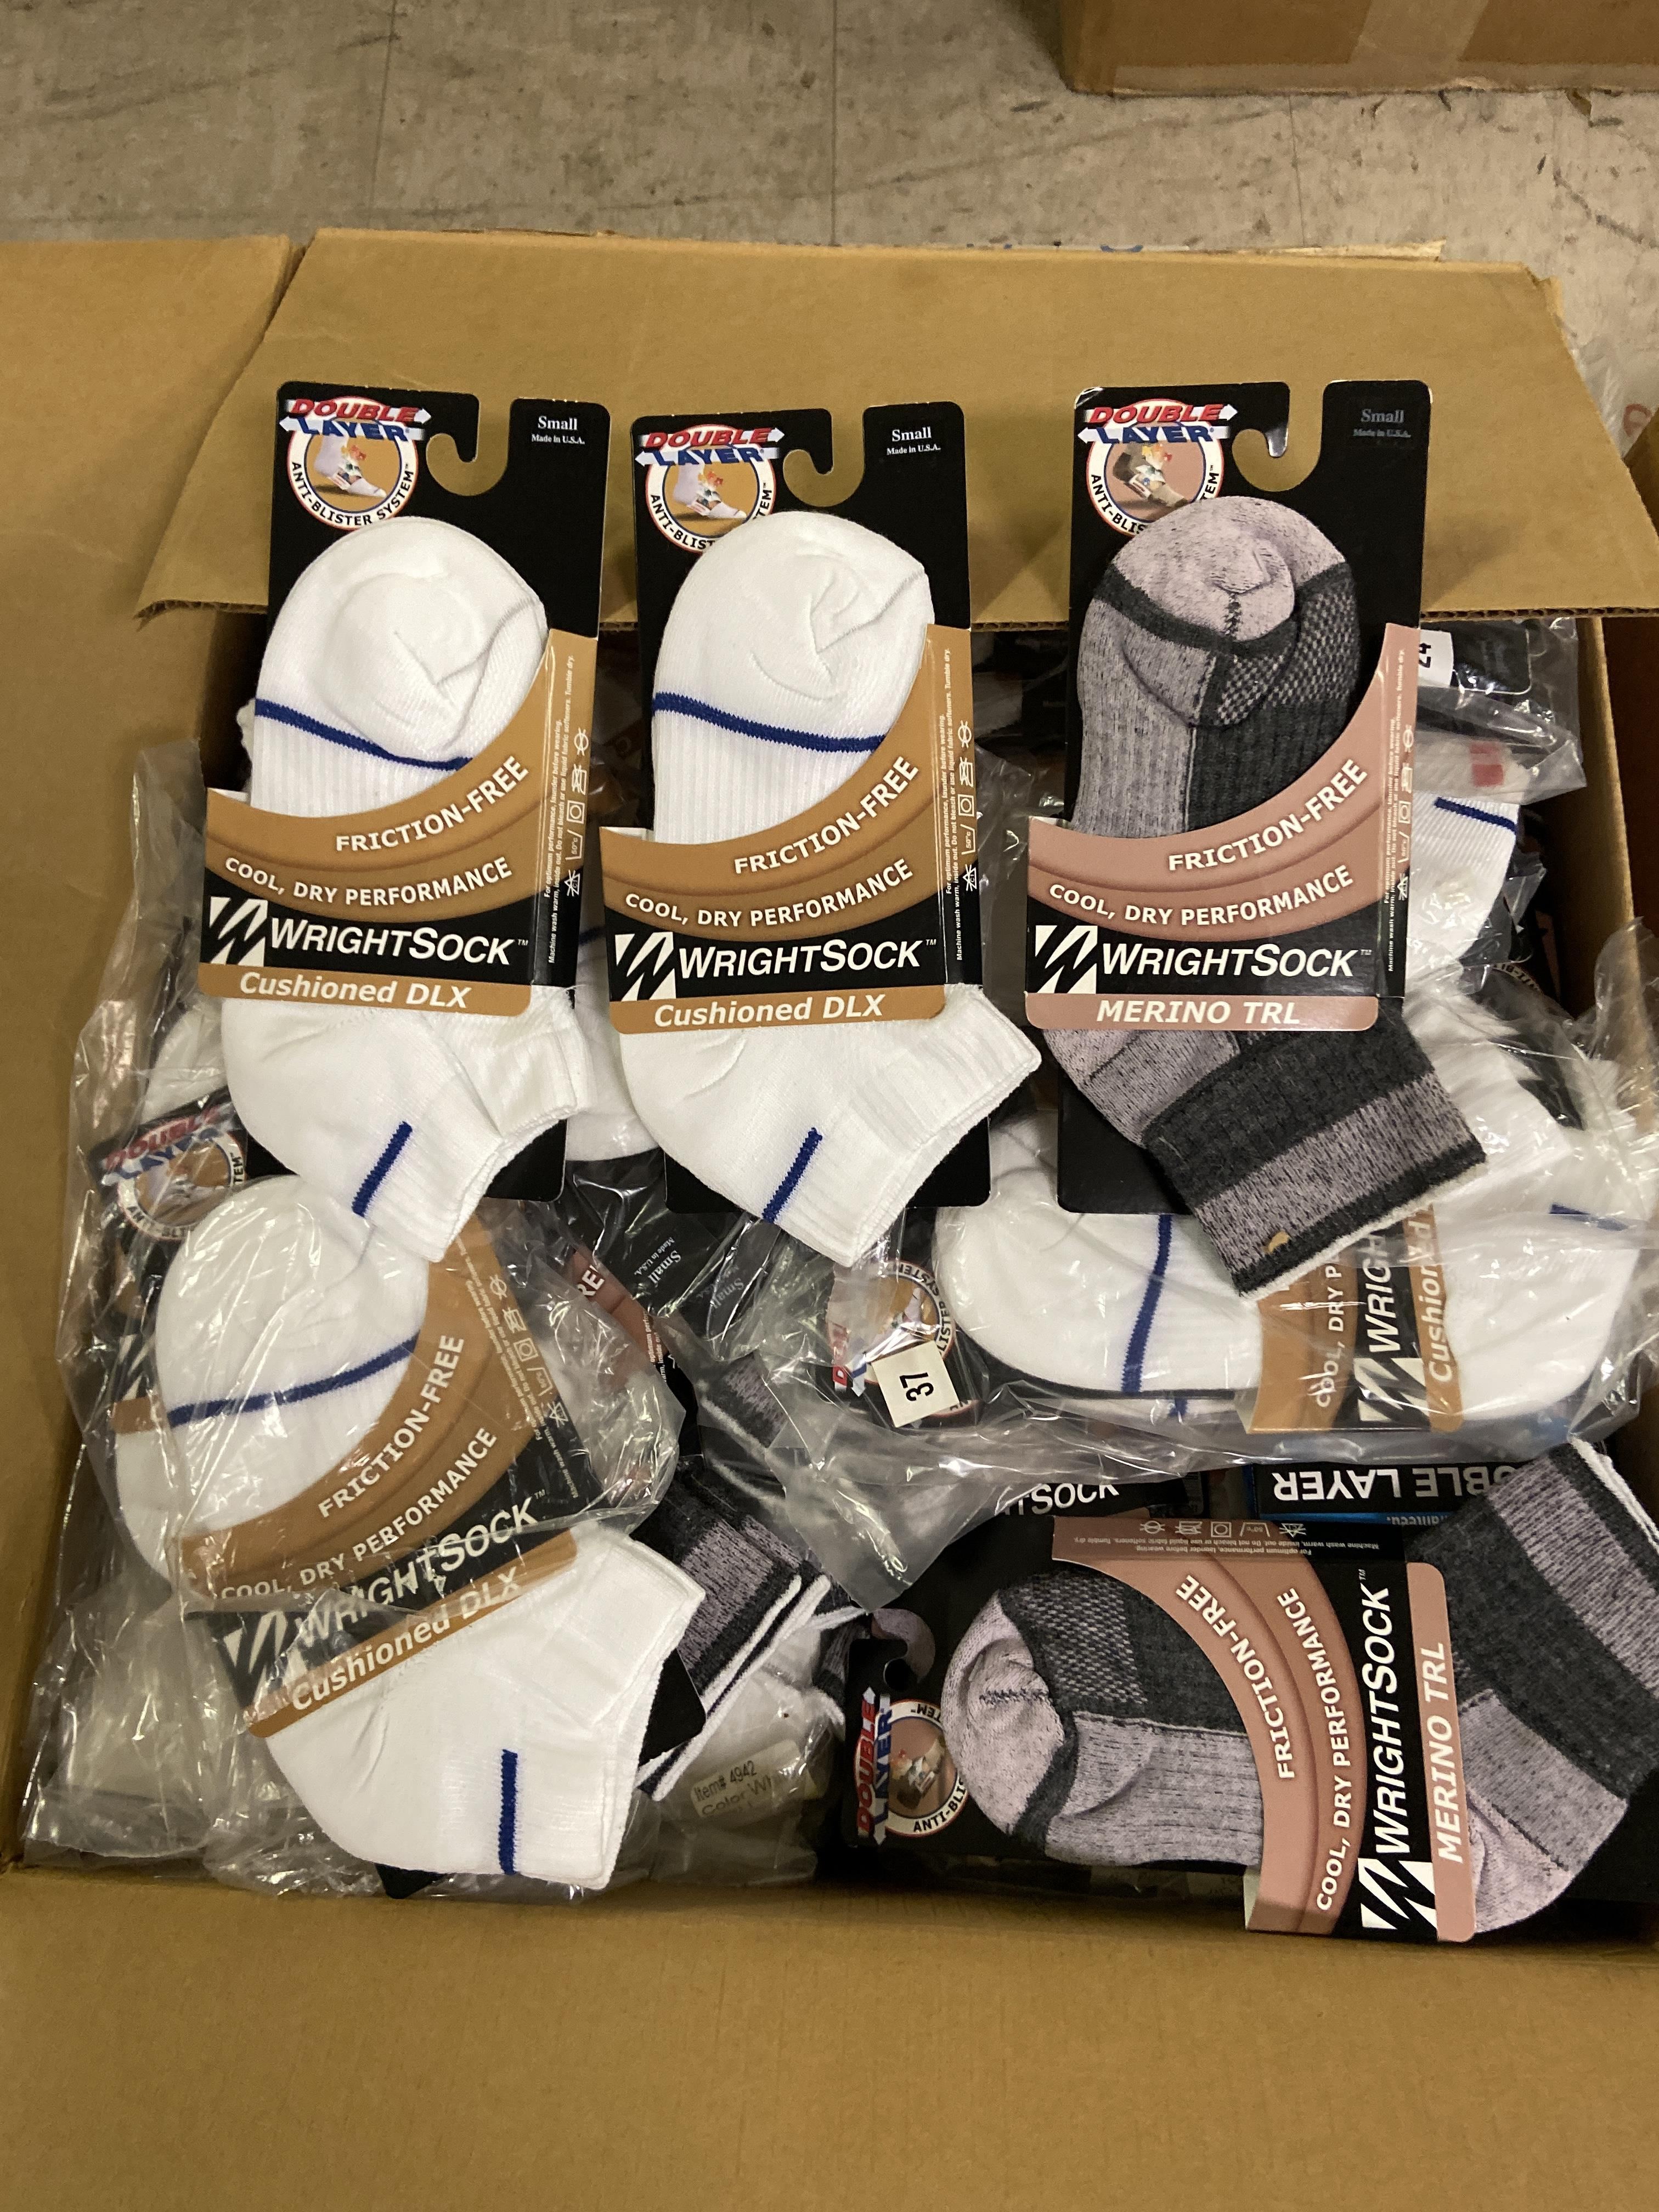 Lot 11 - 250+ packs of New Socks, Wrightsock Cushioned DLX and Merino TRL, Double Layer, Various Colors Lot